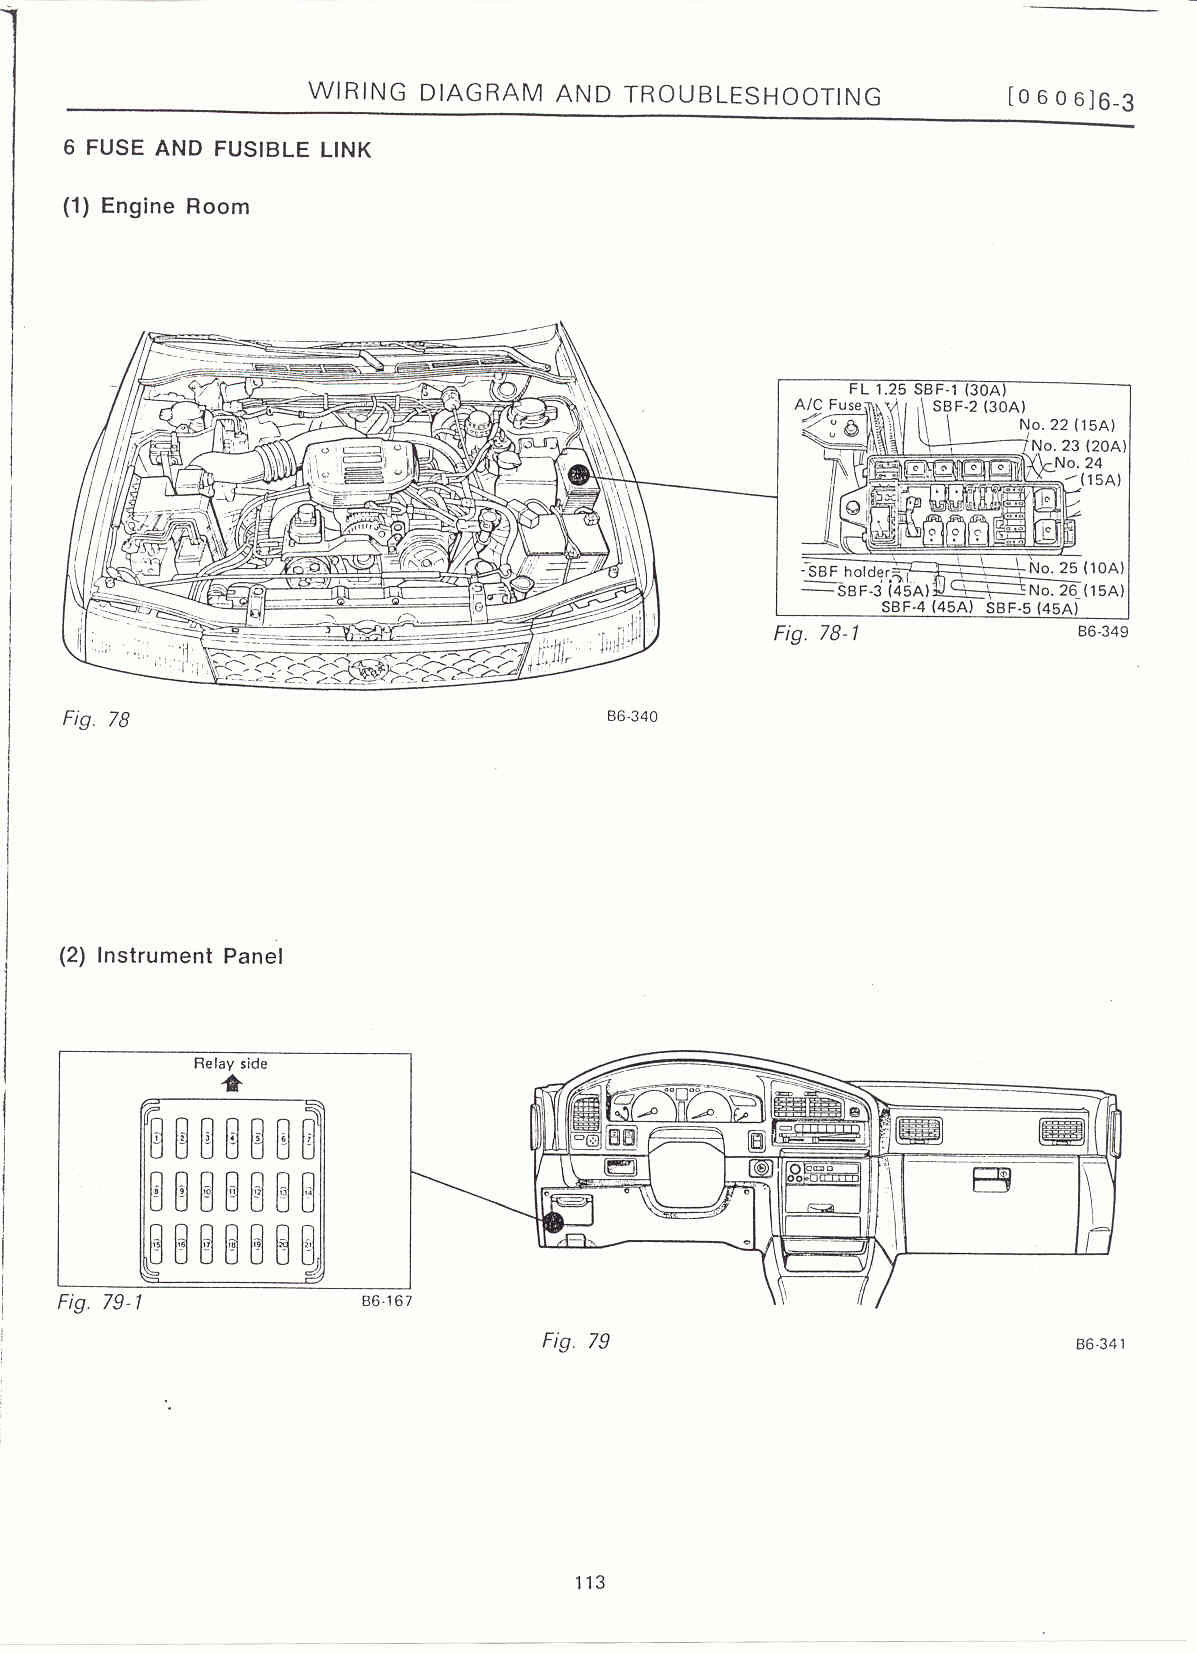 Subaru Outback 2001 Engine Room Fuse Box Diagram : 48